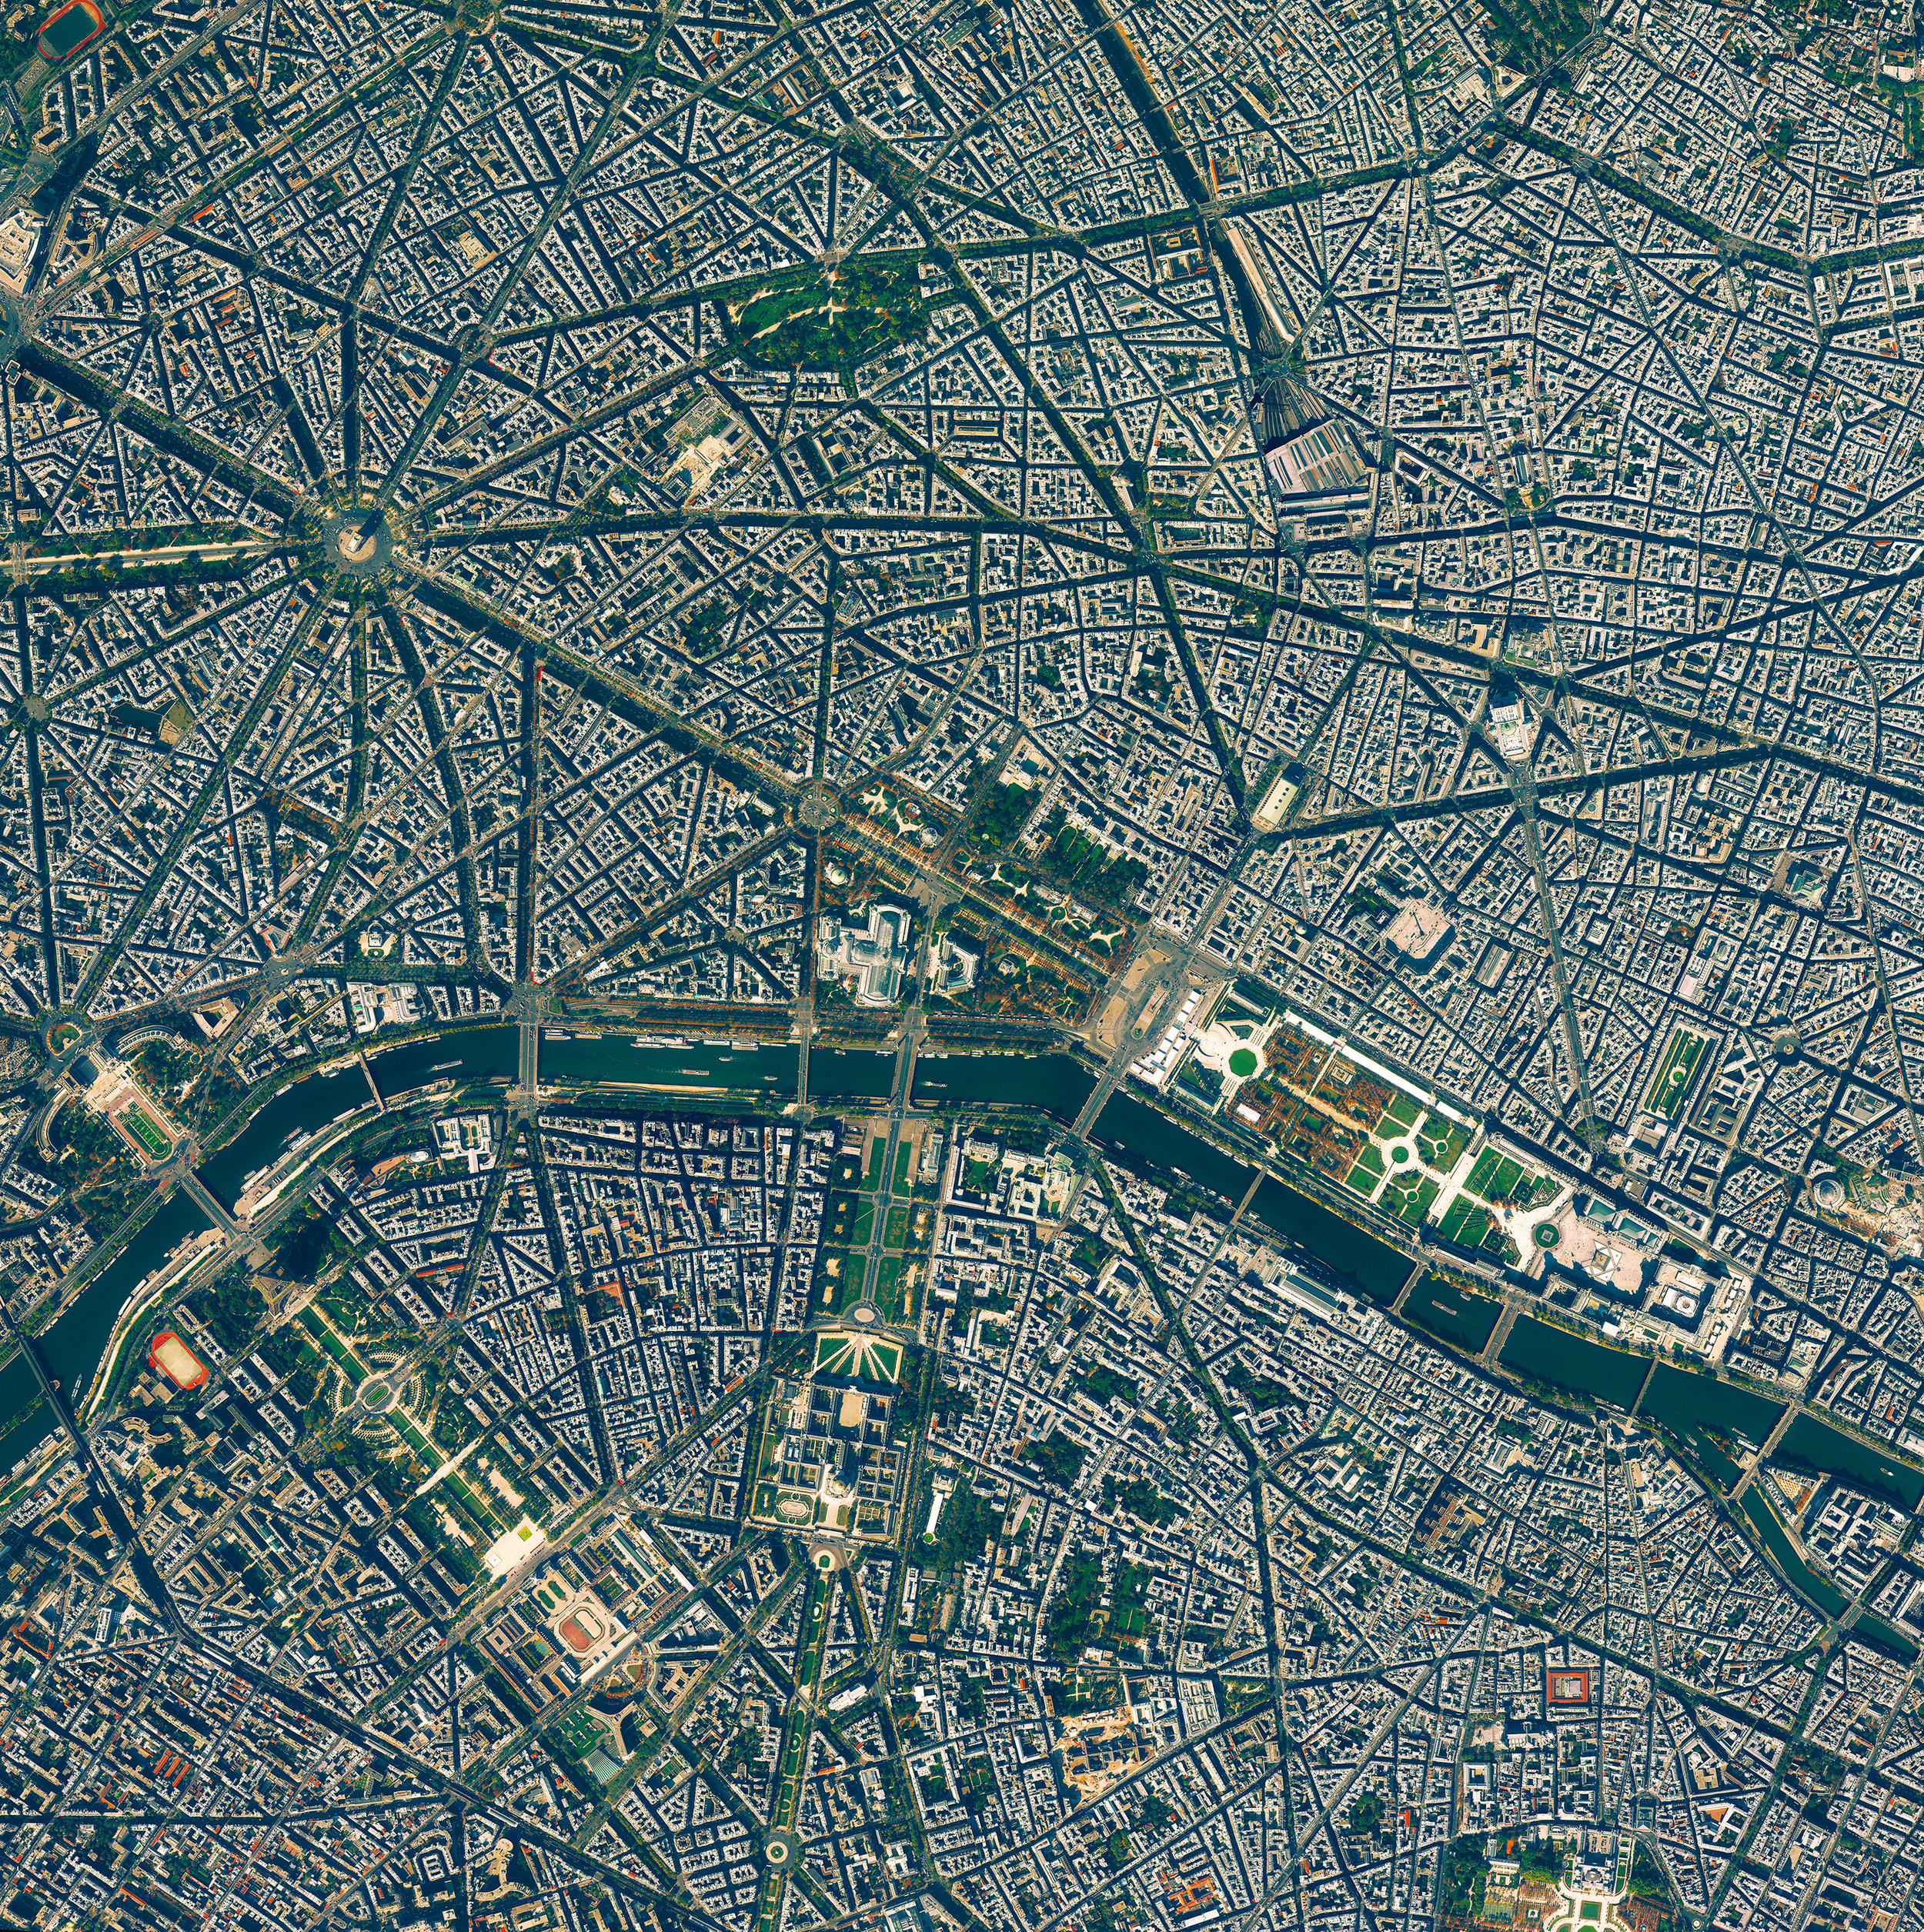 """3/25/2017  Paris  Paris, France  48.852716, 2.344834  Paris is the most populated city in France, and the ninth most populated city in Europe, with 2.2 million inhabitants. Known as """"The City of Light,"""" the city served as a central hub for luminaries during in the Age of Enlightenment, and also as a literal center of light as one of the first European cities to use gas street lamps in the 1860's.  Source imagery: DigitalGlobe"""